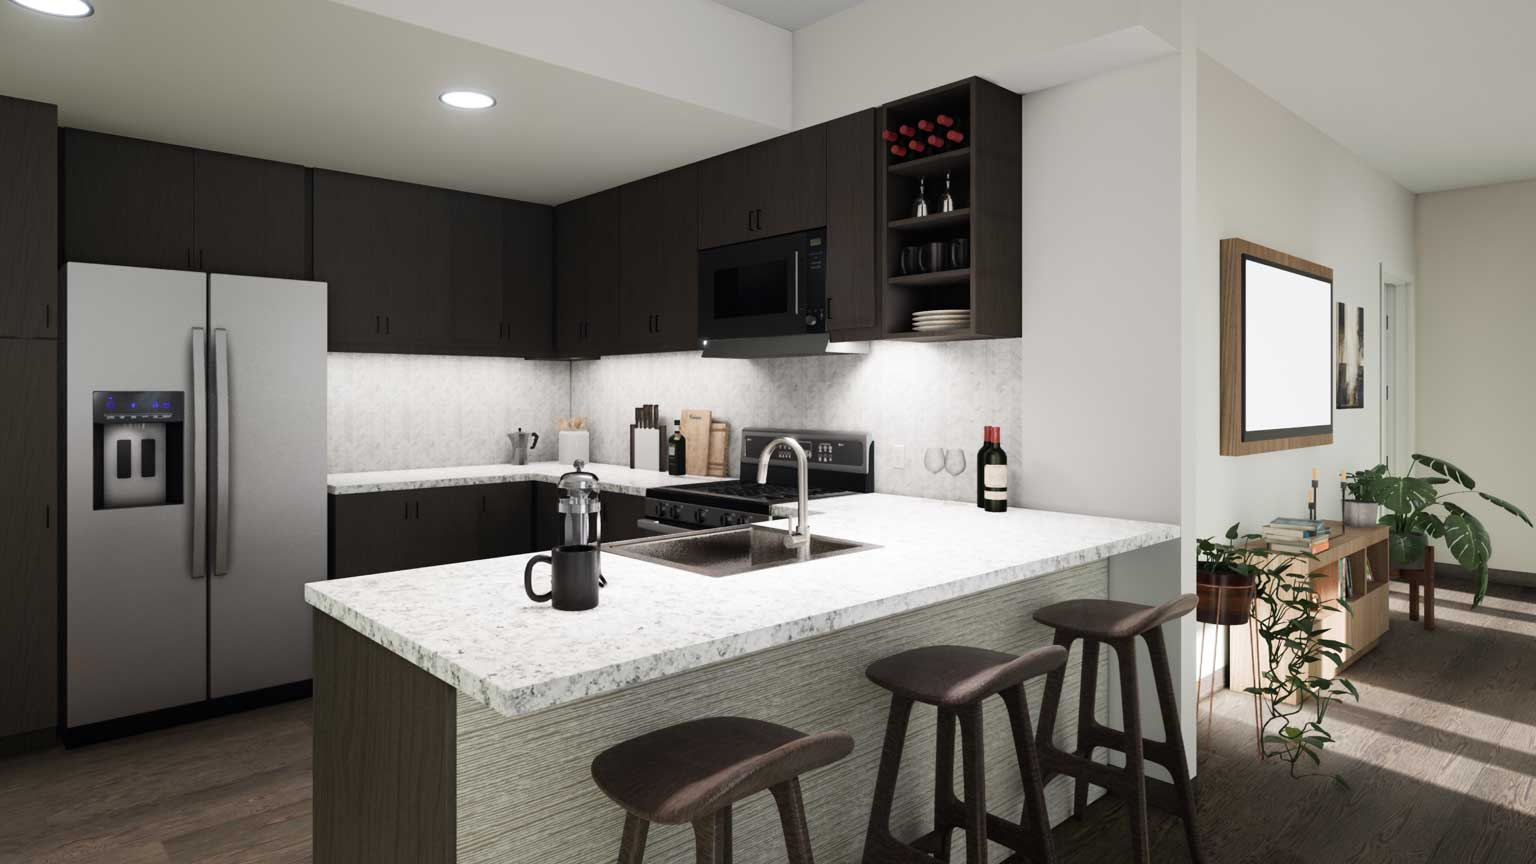 A photographic illustration of an open kitchen with balcony at a residential space at the Life Time Living in Coral Gables, Florida